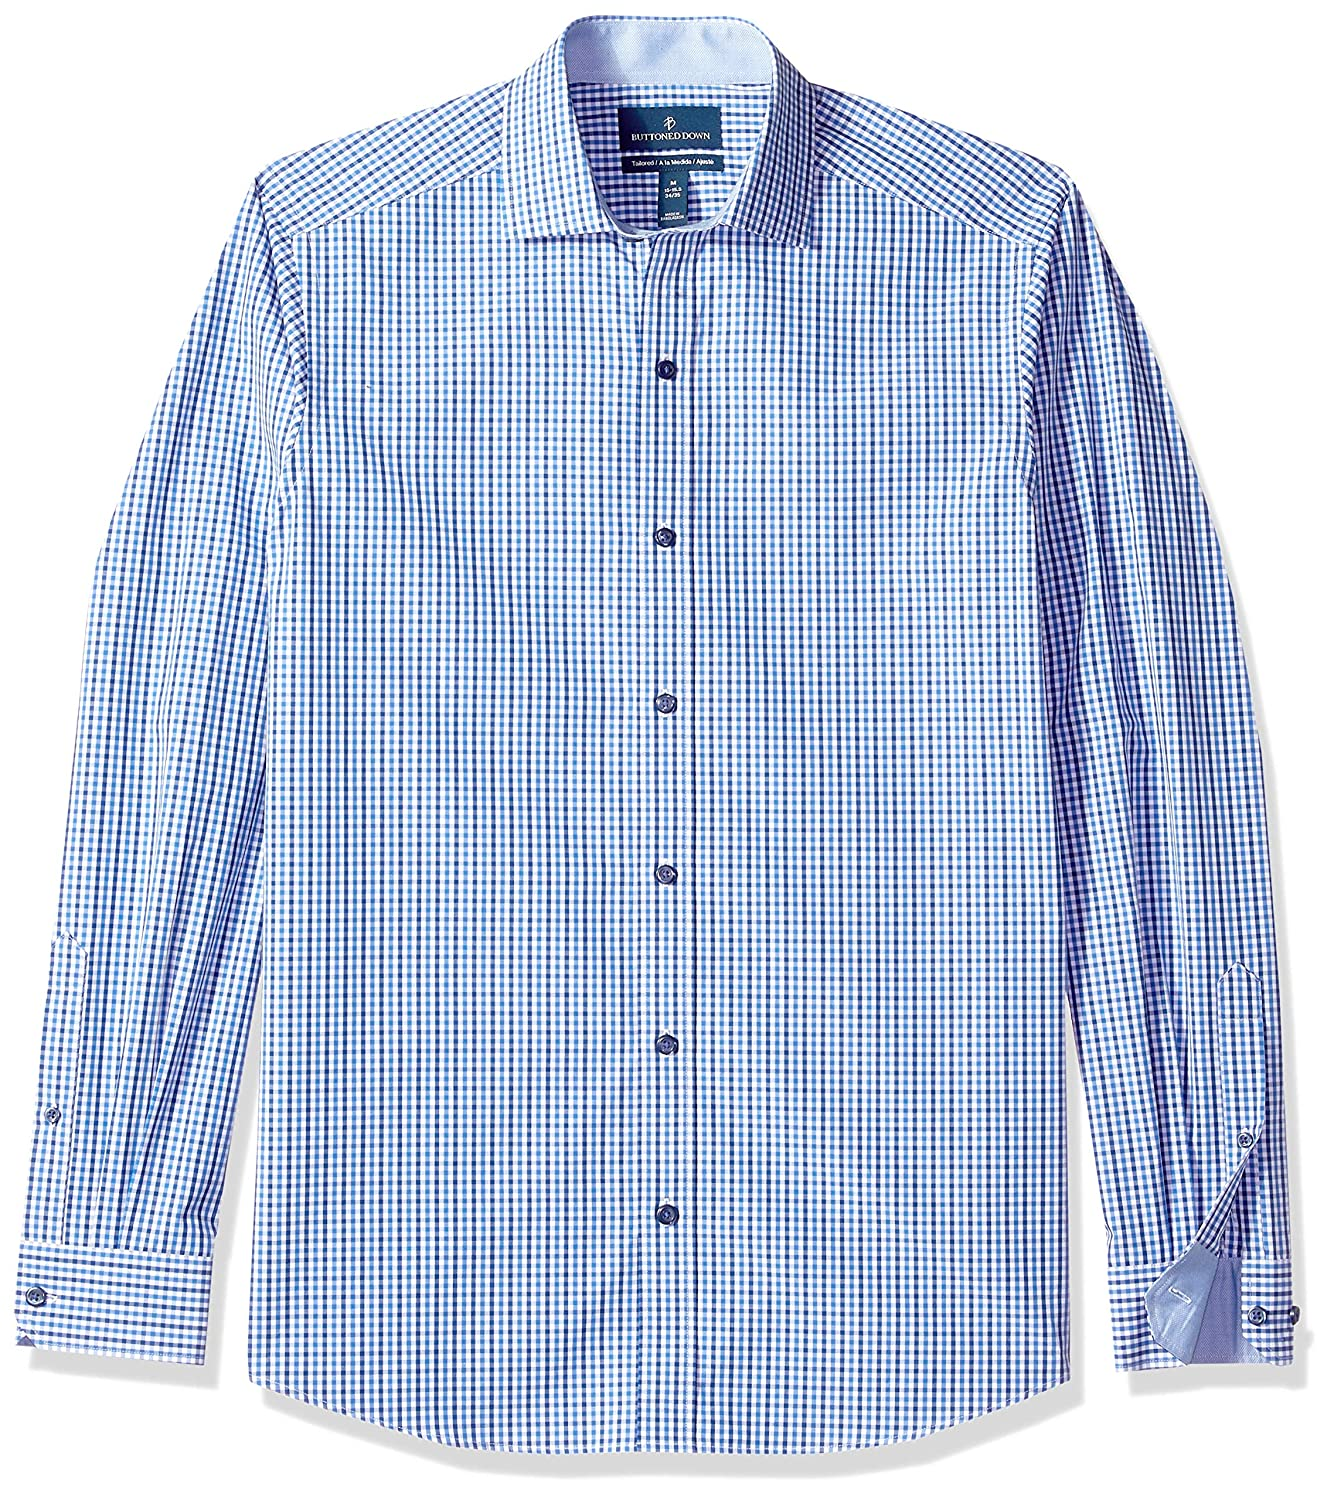 BUTTONED DOWN Mens Tailored Fit Supima Cotton Dress Casual Shirt Brand